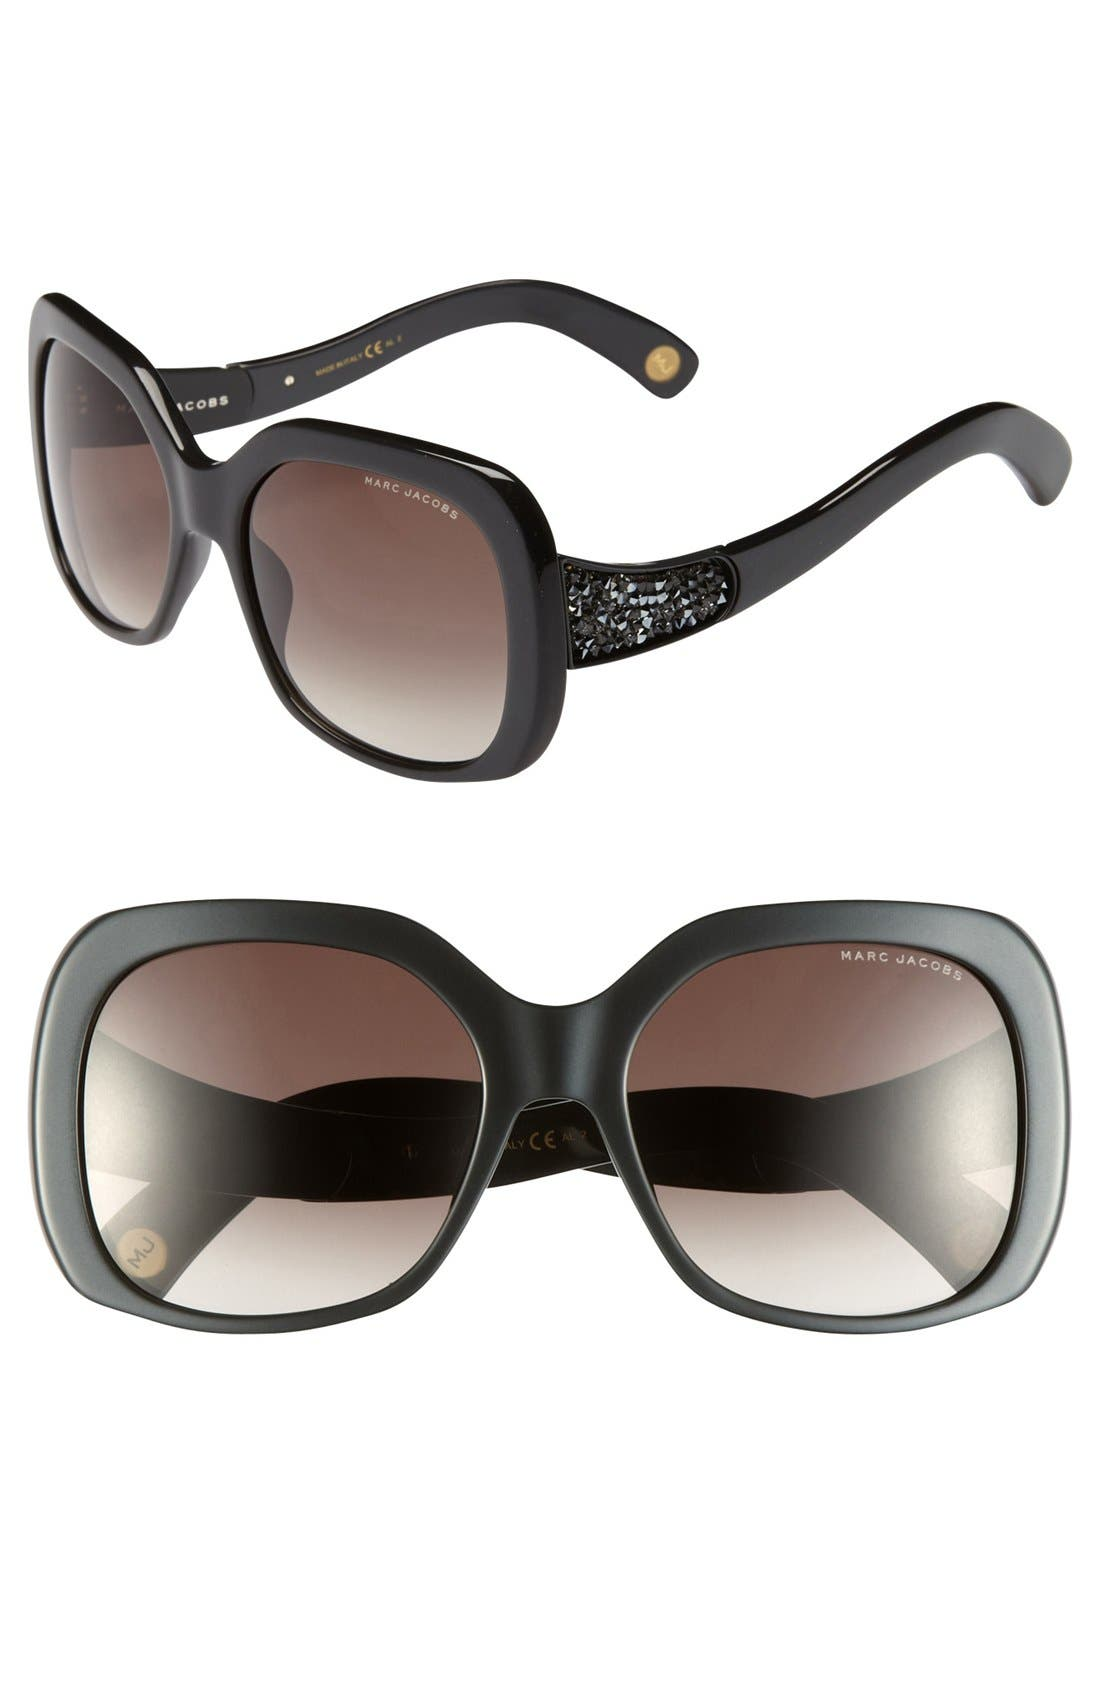 Alternate Image 1 Selected - MARC JACOBS 57mm Sunglasses